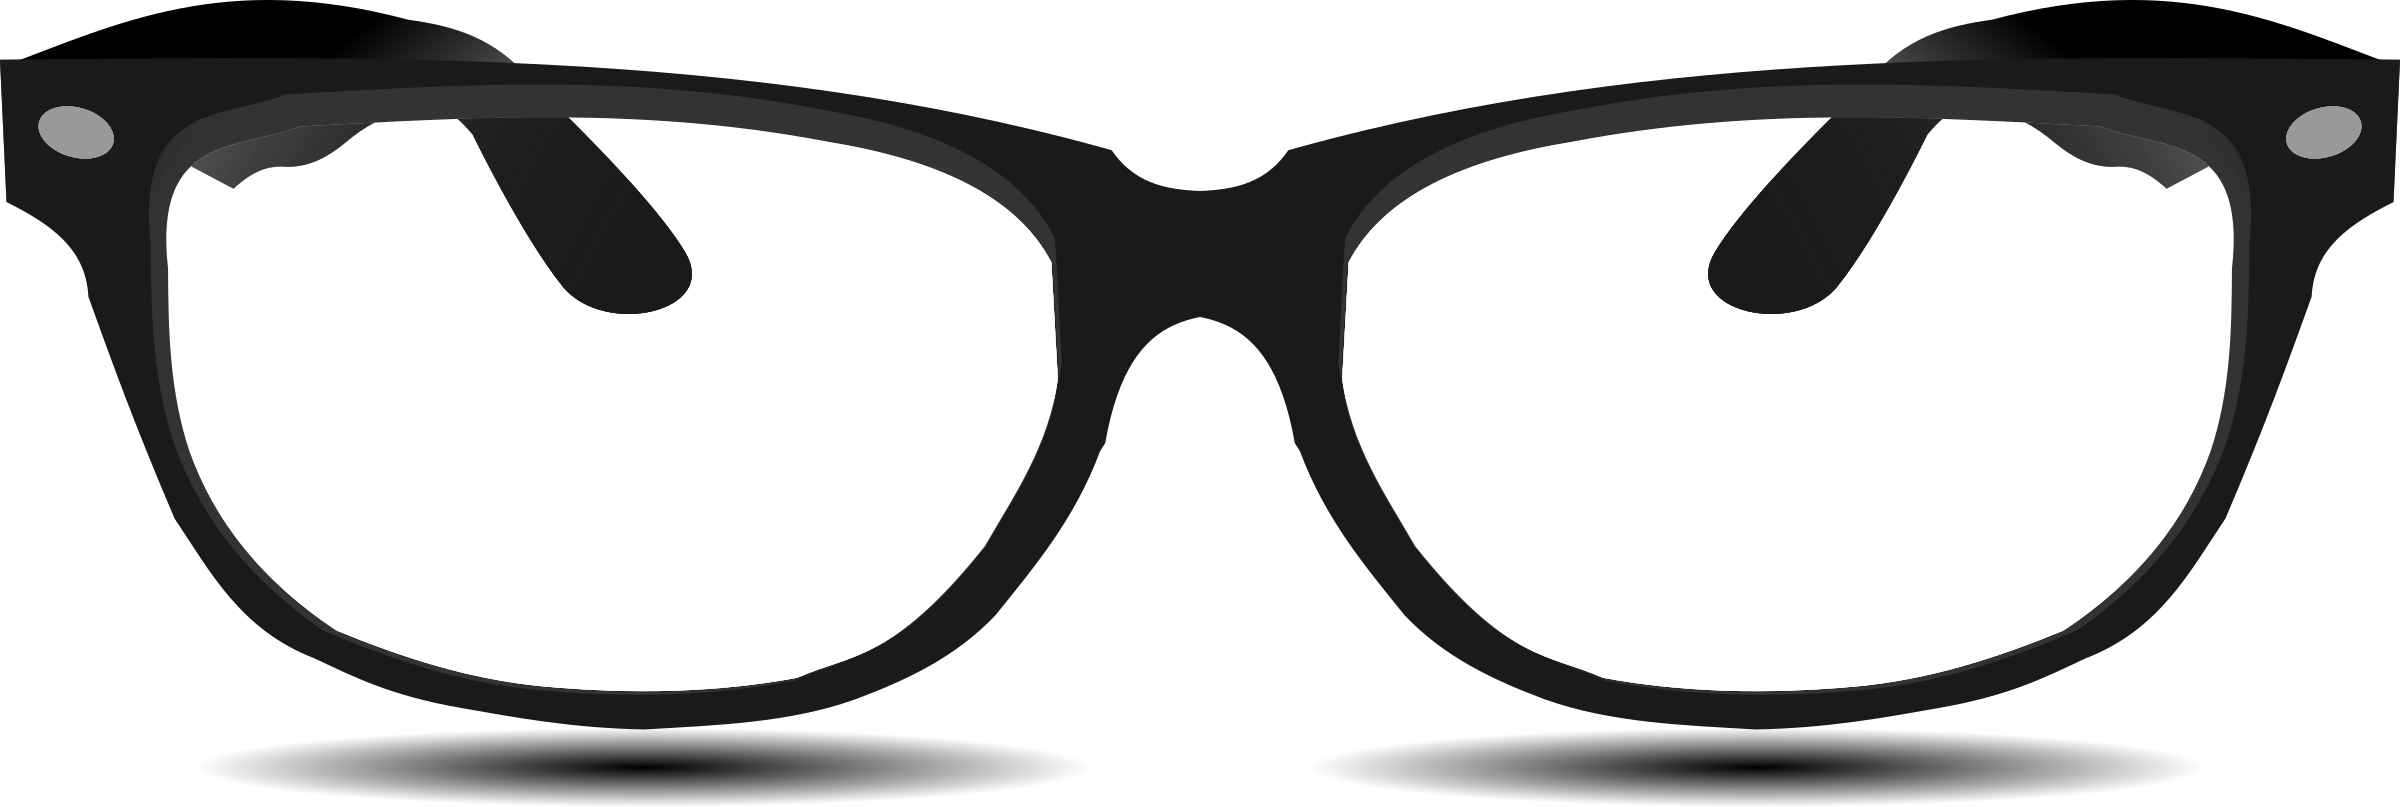 Sunglasses clipart simple. Glasses by hatalar a